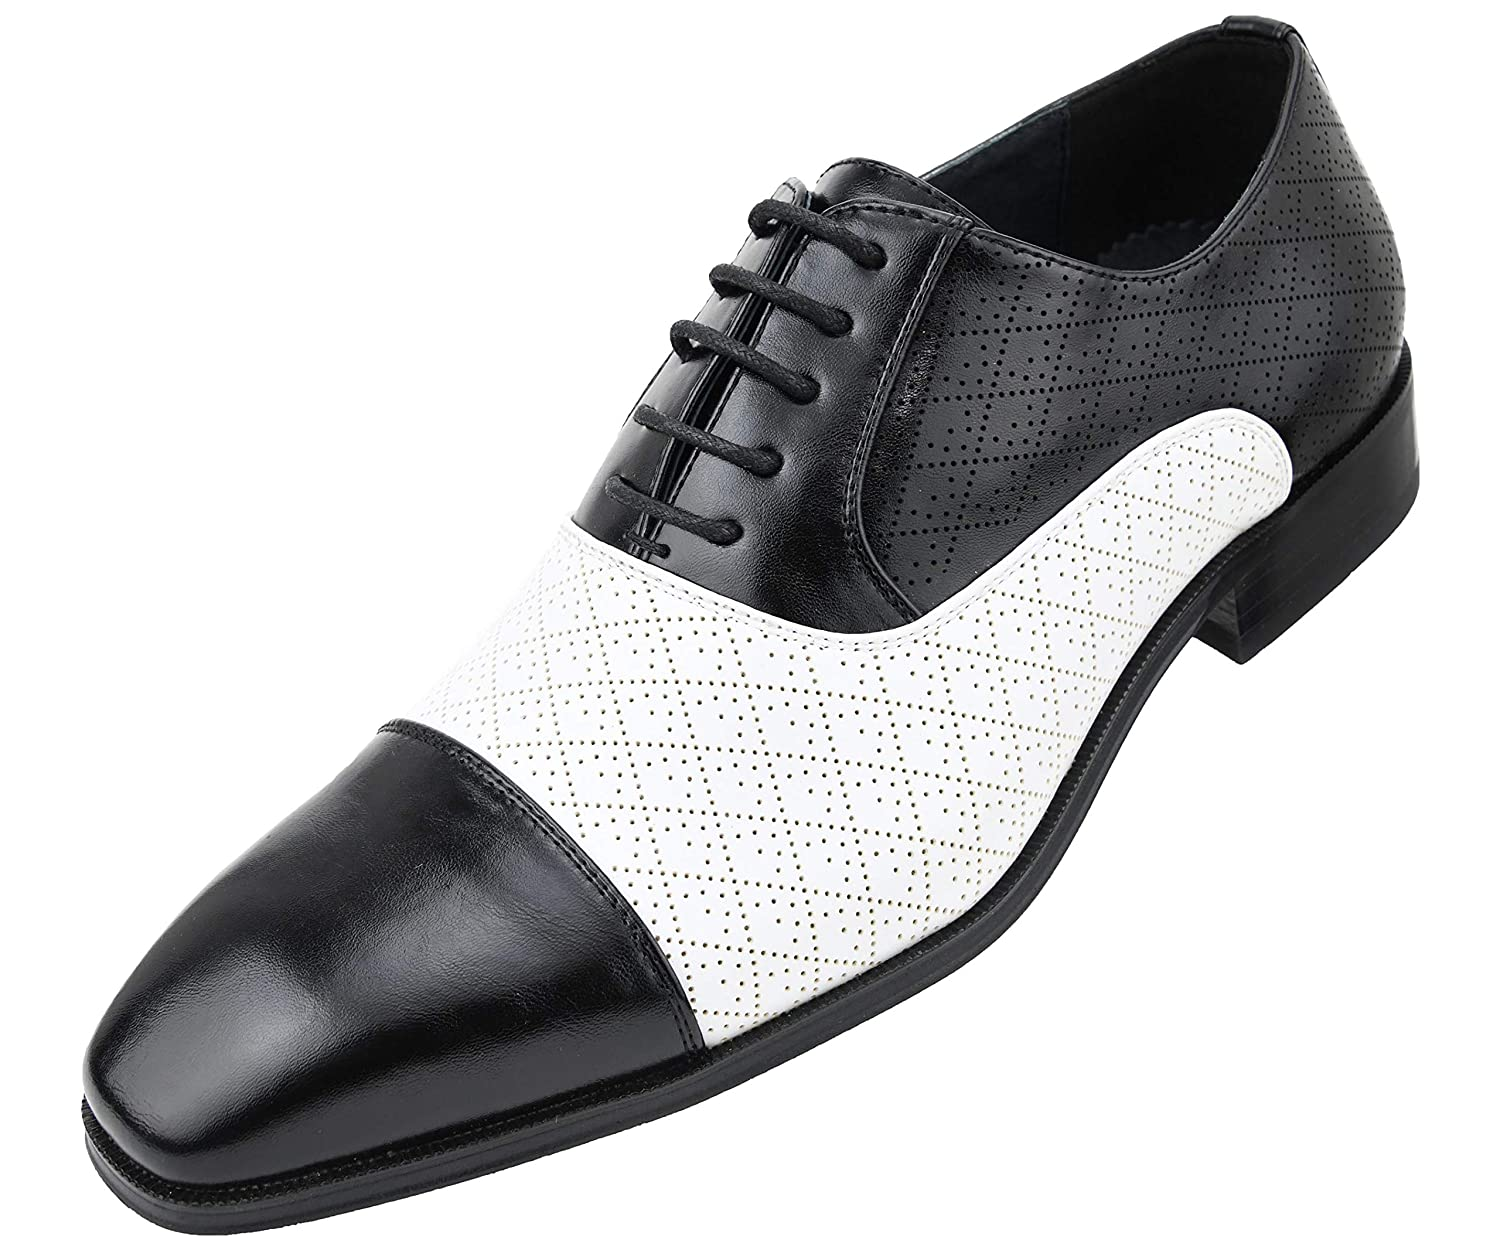 1920s Boardwalk Empire Shoes Amali Mens Quilted Embossed Two Tone Lace Up Faux Leather Oxford Dress Shoe with Smooth Cap Toe Style Hammond $49.99 AT vintagedancer.com